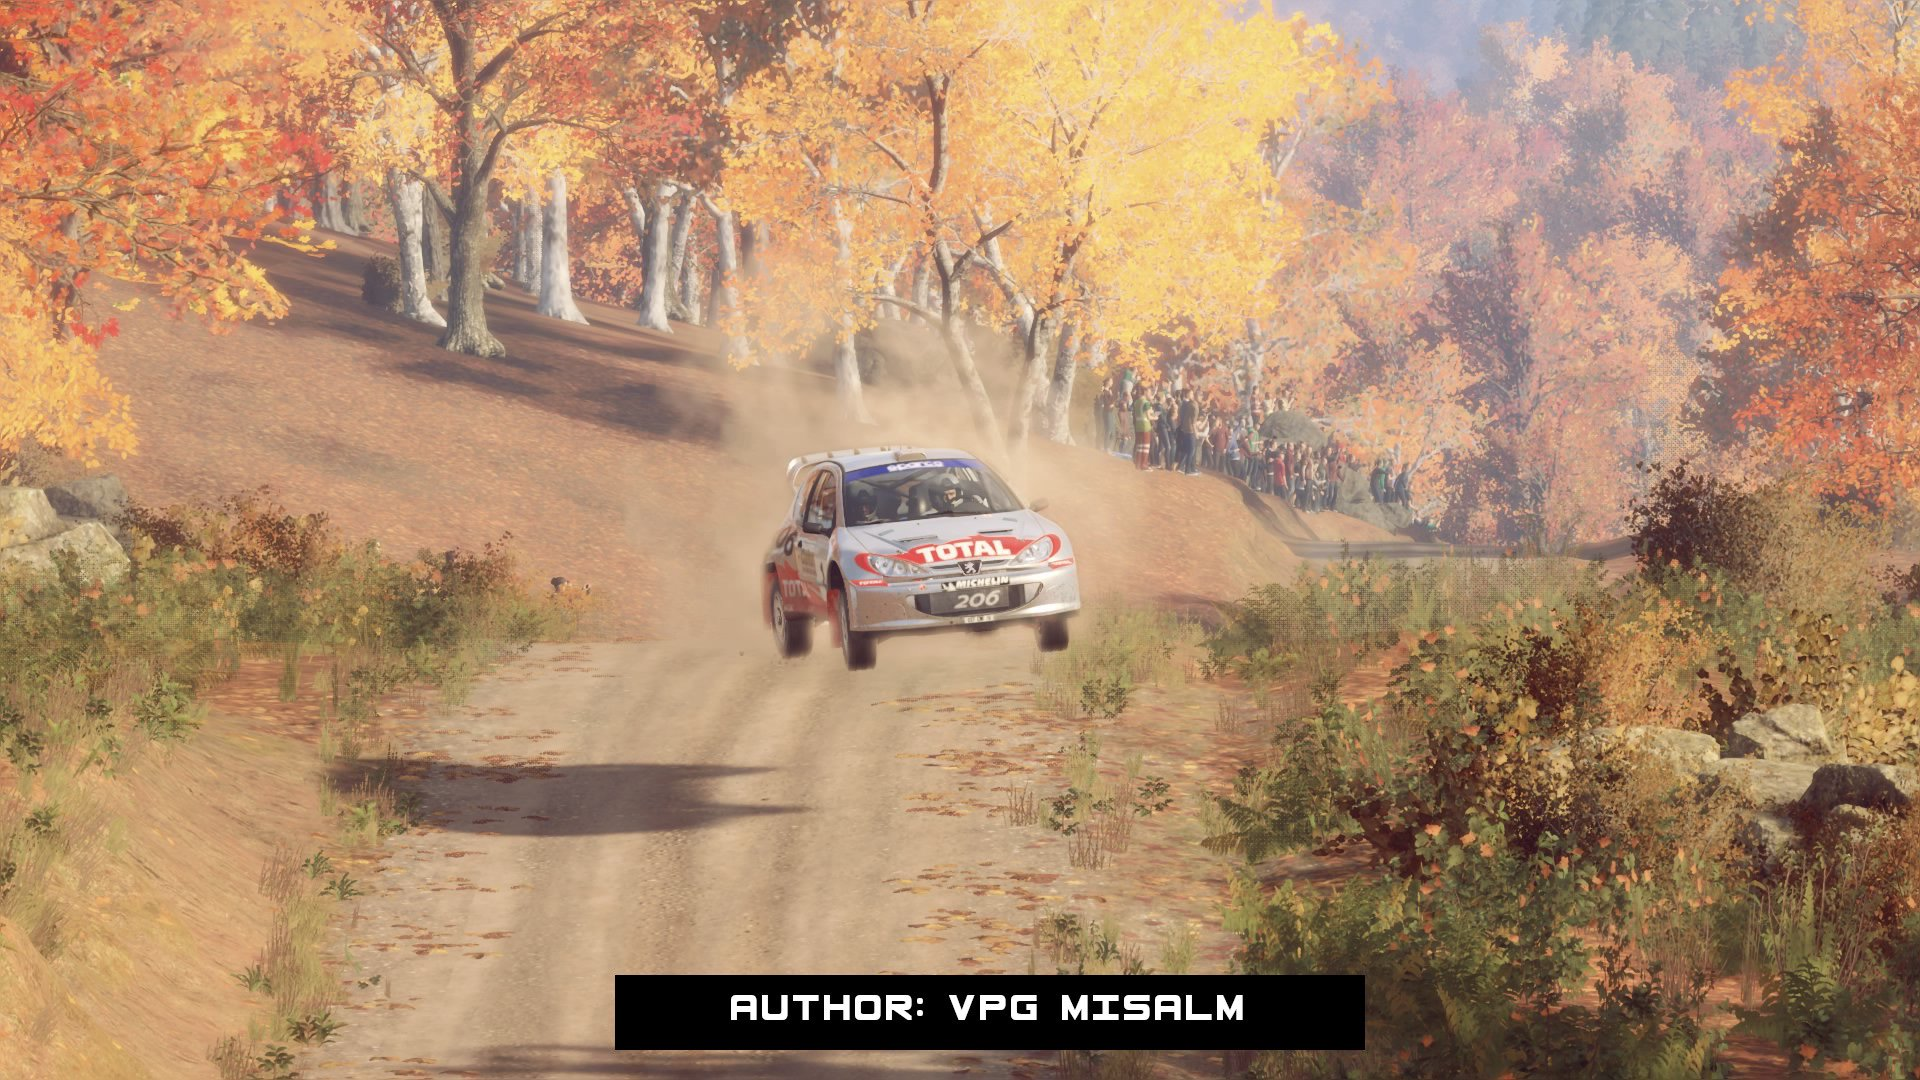 Gameplay from Dirt 2.0 game by Codemasters